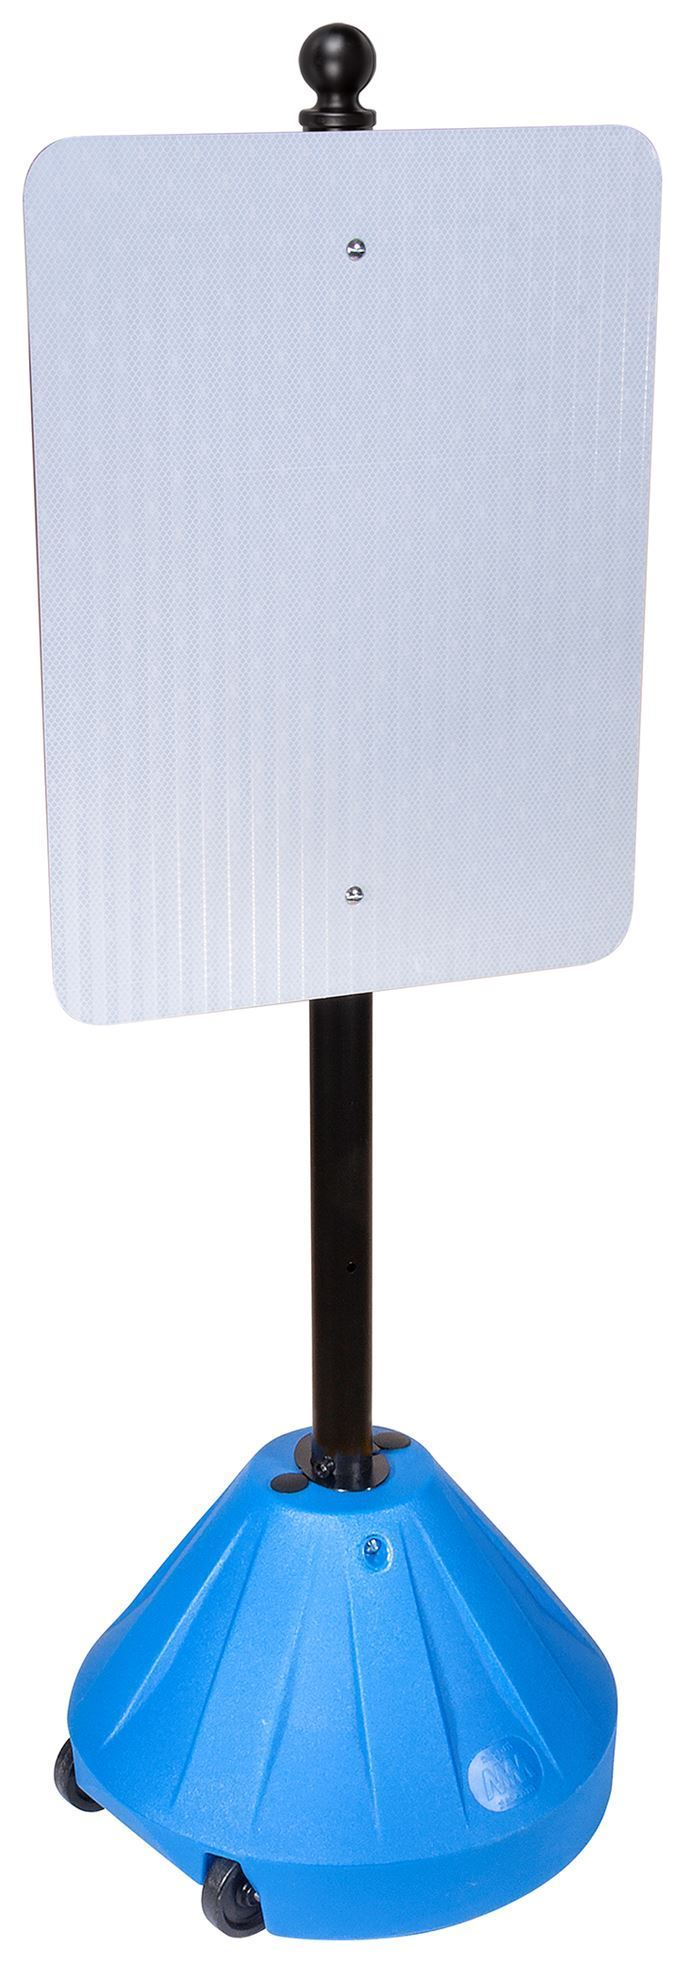 """Picture of Portable Pole 2 Sign Base and 48"""" Pole"""